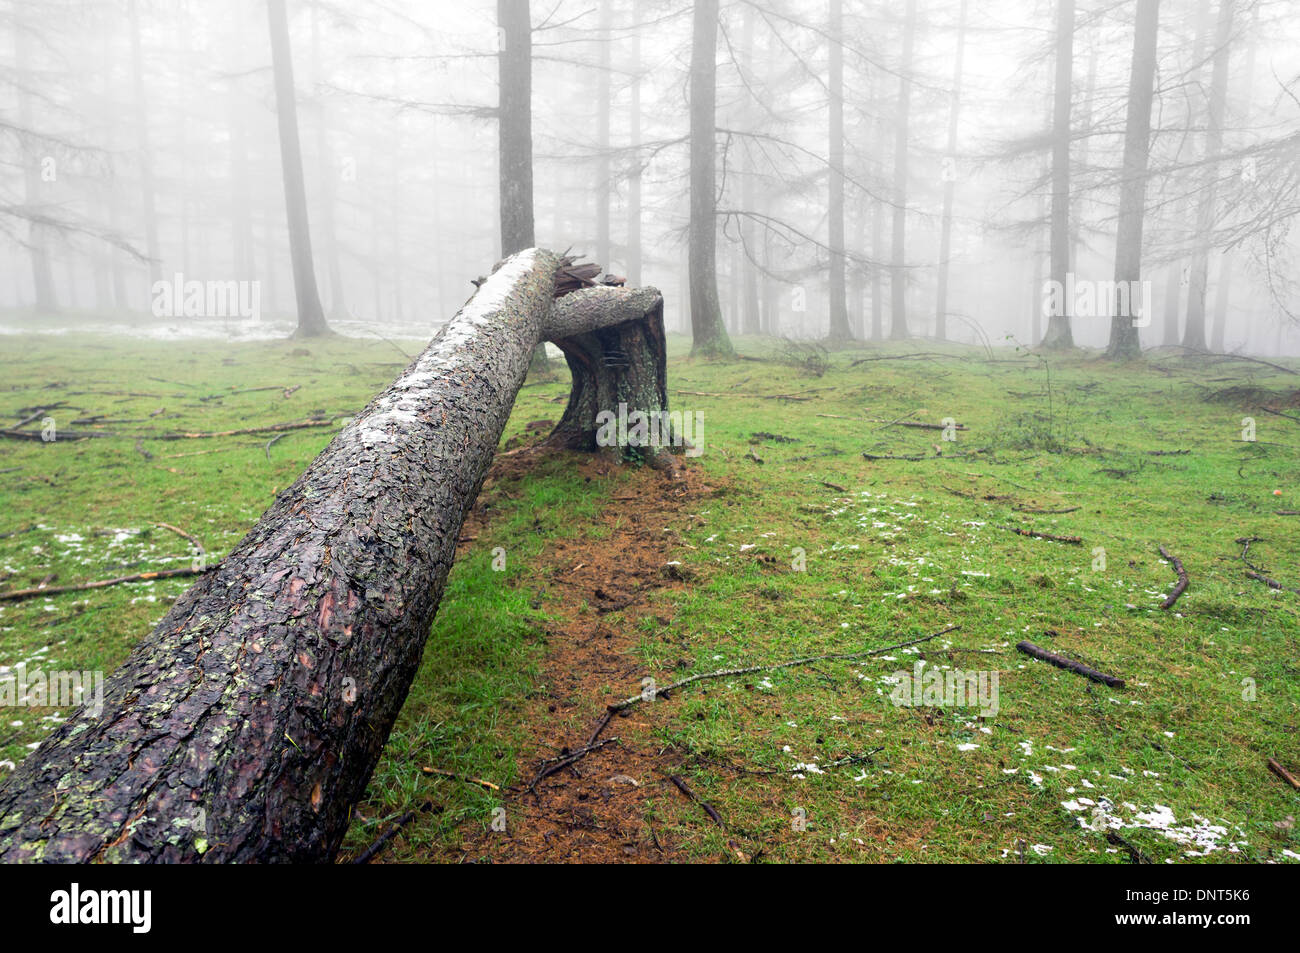 fallen tree trunk in foggy forest - Stock Image